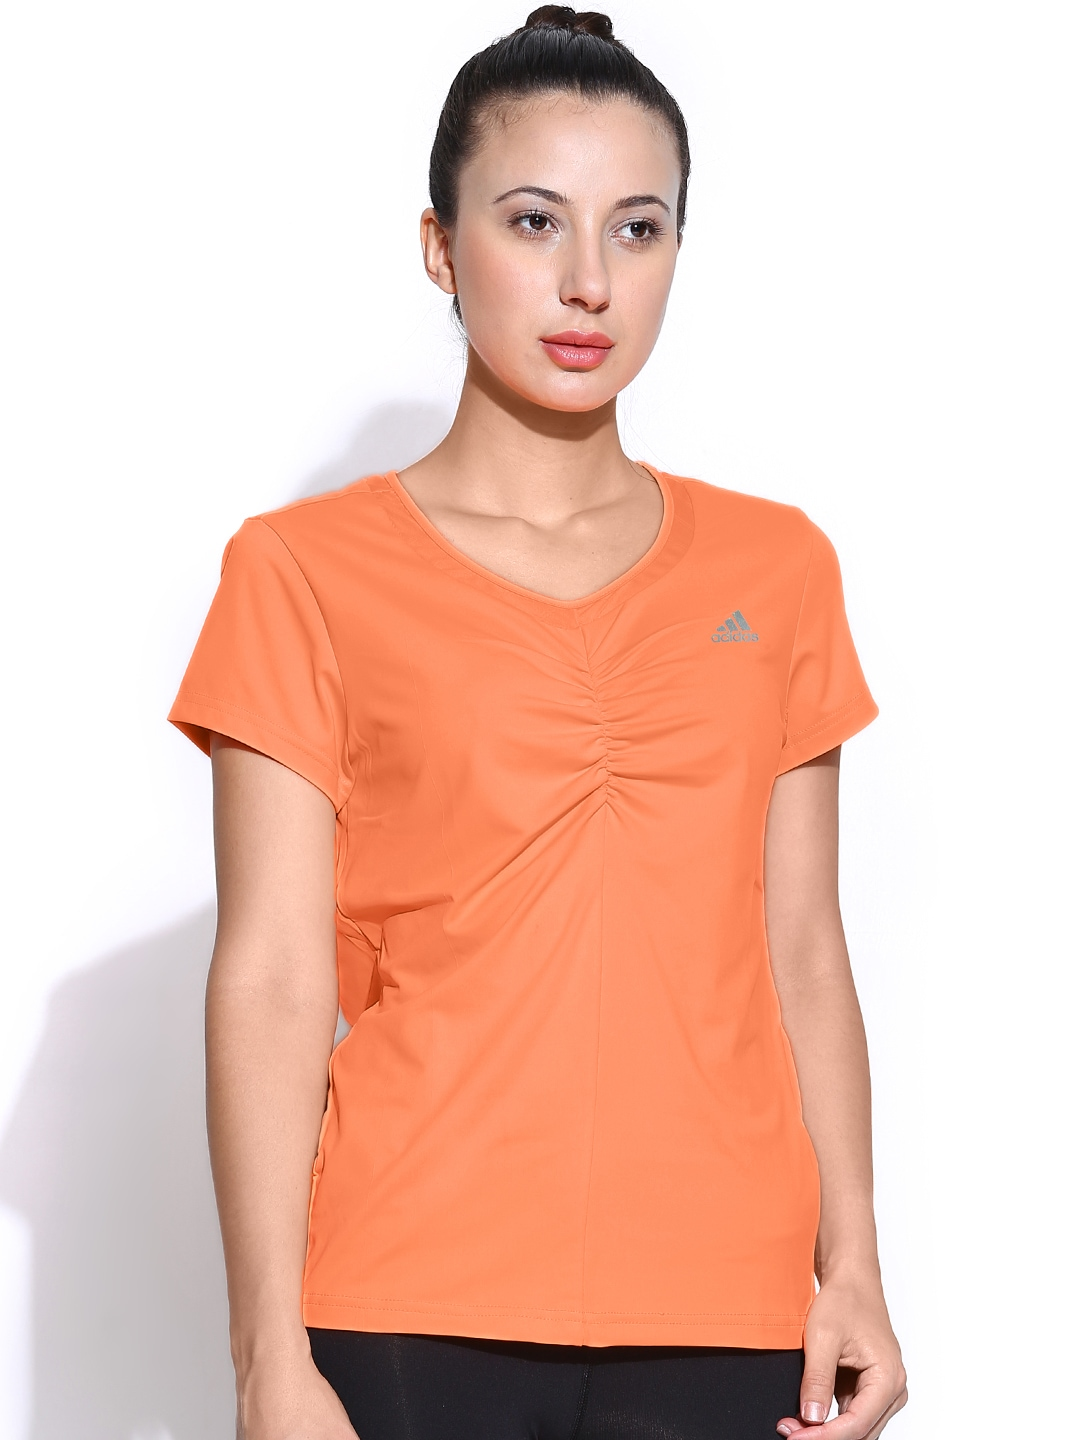 myntra adidas women neon orange w ap tee tennis t shirt 705958 buy myntra adidas tshirts at. Black Bedroom Furniture Sets. Home Design Ideas